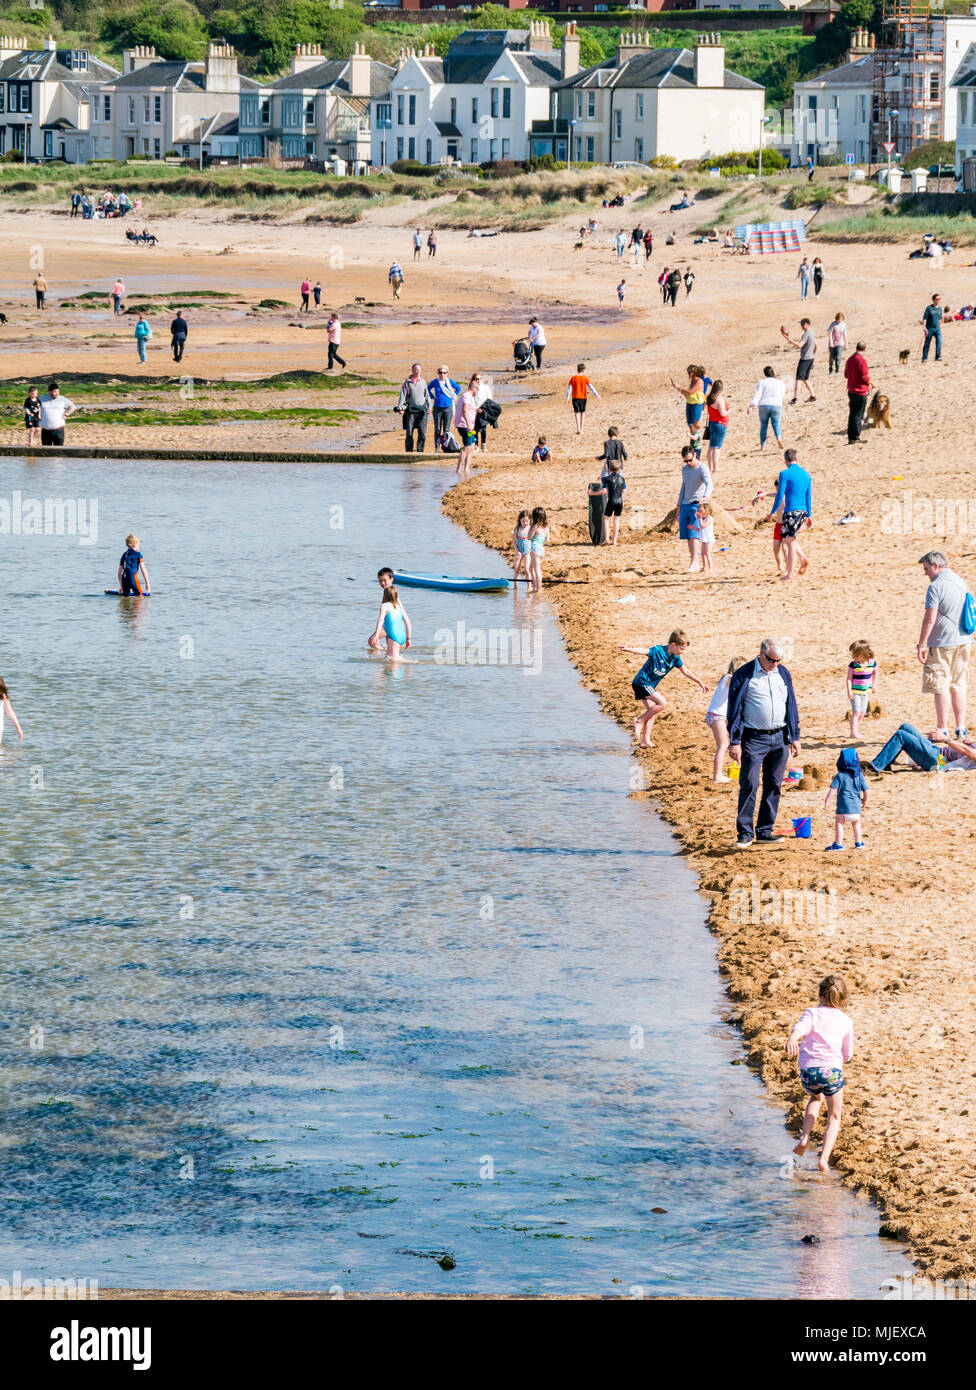 North Berwick, East Lothian, Scotland, United Kingdom, 5th May 2018.  The sun shines on the seaside town.  It is very busy with people enjoying outdoor activities on the bank holiday weekend. The beach at Milsey Bay is crowded with families, and children play in the tidal bath pool - Stock Image